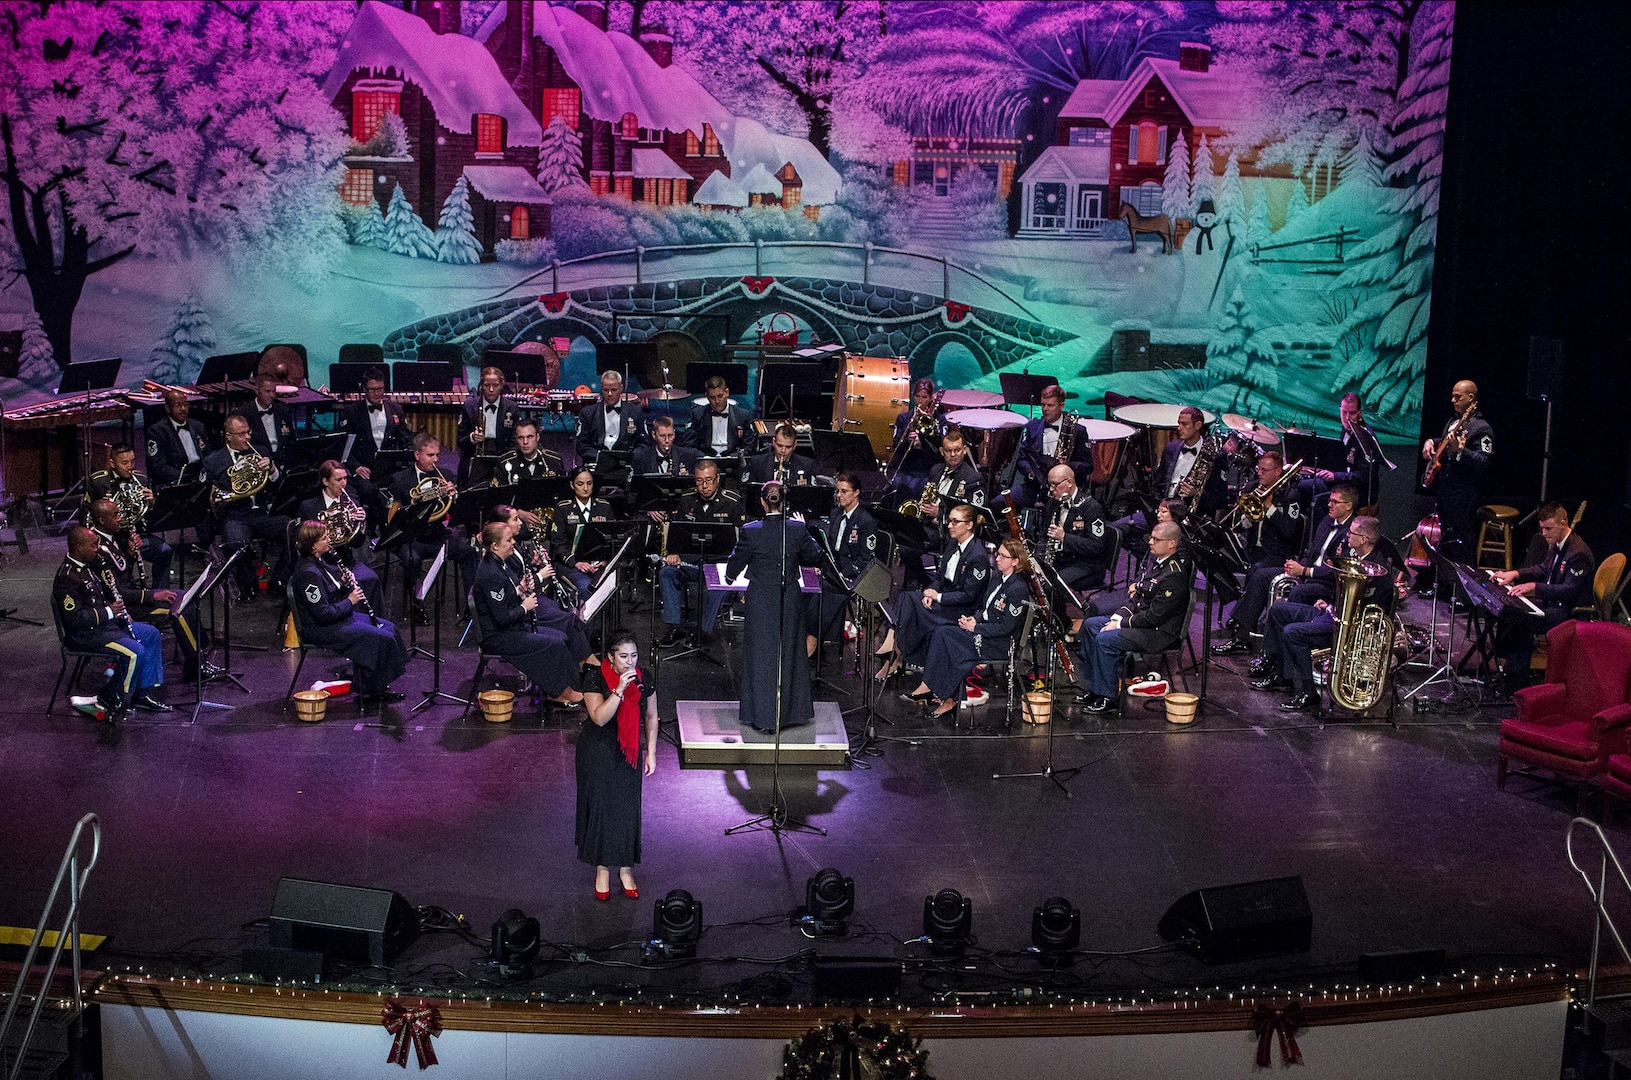 Airman 1st Class Alycia Cancel, United States Air Force Band of the West vocalist, performs during the Holiday in Blue concert Dec. 7, 2015 at the Edgewood Independent School District Theatre for the Performing Arts in San Antonio, Texas. The concert included a variety of holiday songs from around the world, a children's story and a sing-a-long. Attendees included members of JBSA, community members and retirees. The Airmen assigned to the band are highly-trained professional musicians who have dedicated themselves to serving their country through music. (U.S. Air Force photo by Johnny Saldivar)